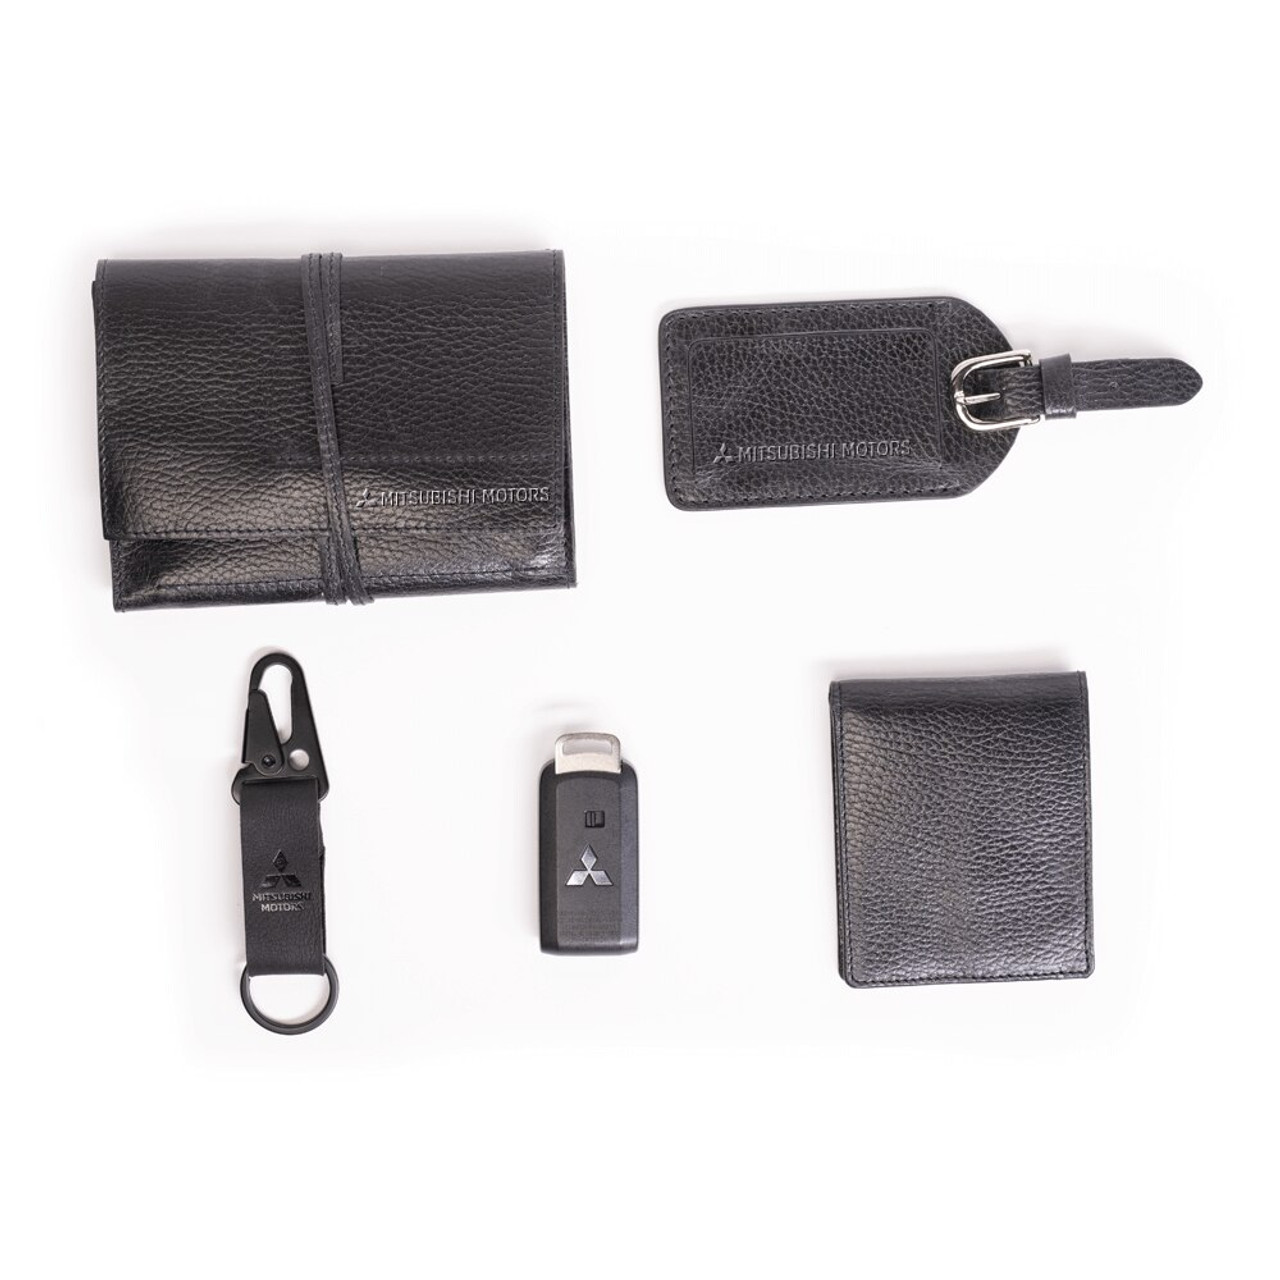 Luggage Tag - Pebble Leather